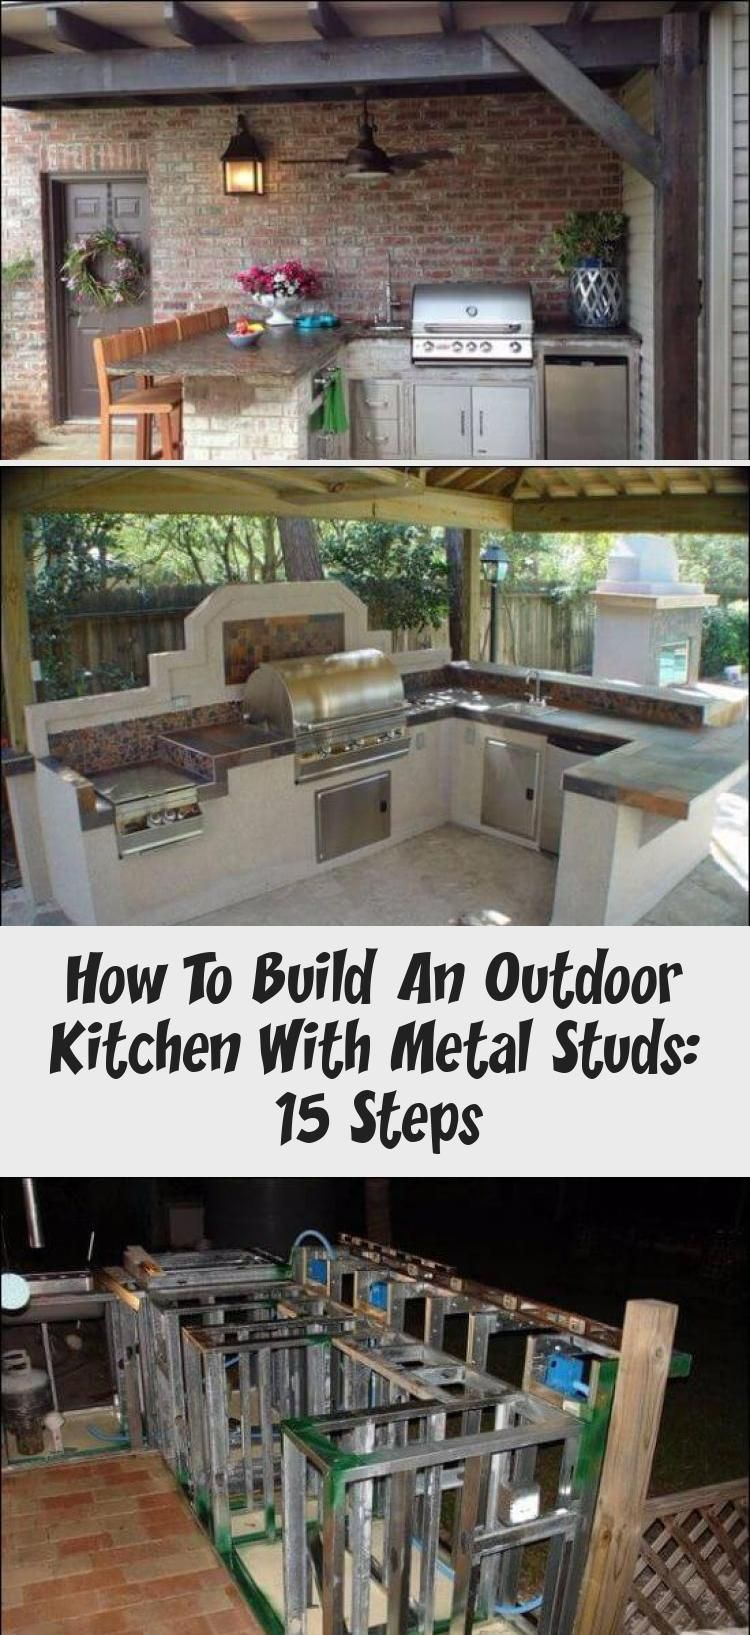 Do You Know How To Build An Outdoor Kitchen With Metal Studs If Not You Re In The Right Build Outdoor Kitchen Outdoor Kitchen Lighting Outdoor Kitchen Island